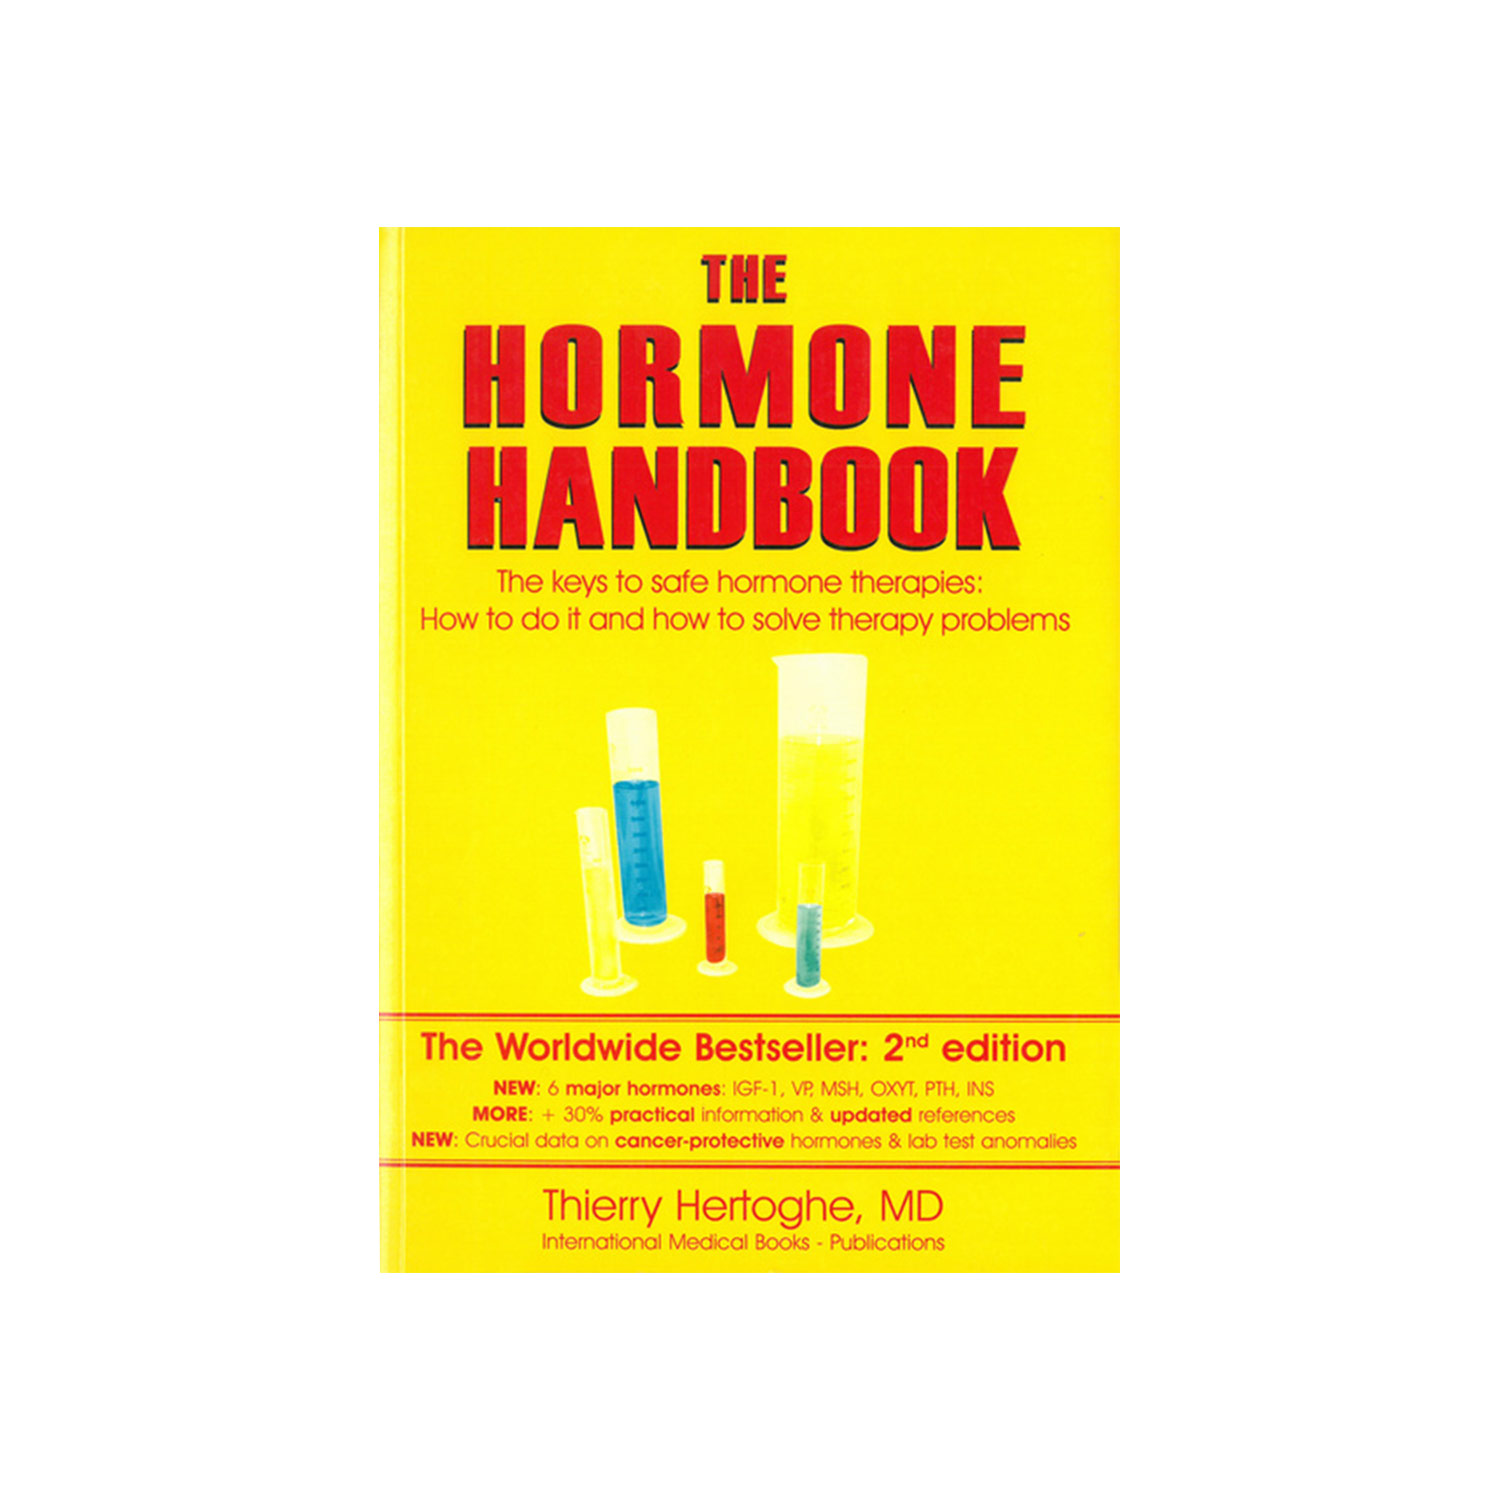 Physician Hormone Handbook – V2 UPDATED by Thierry Hertoghe MD